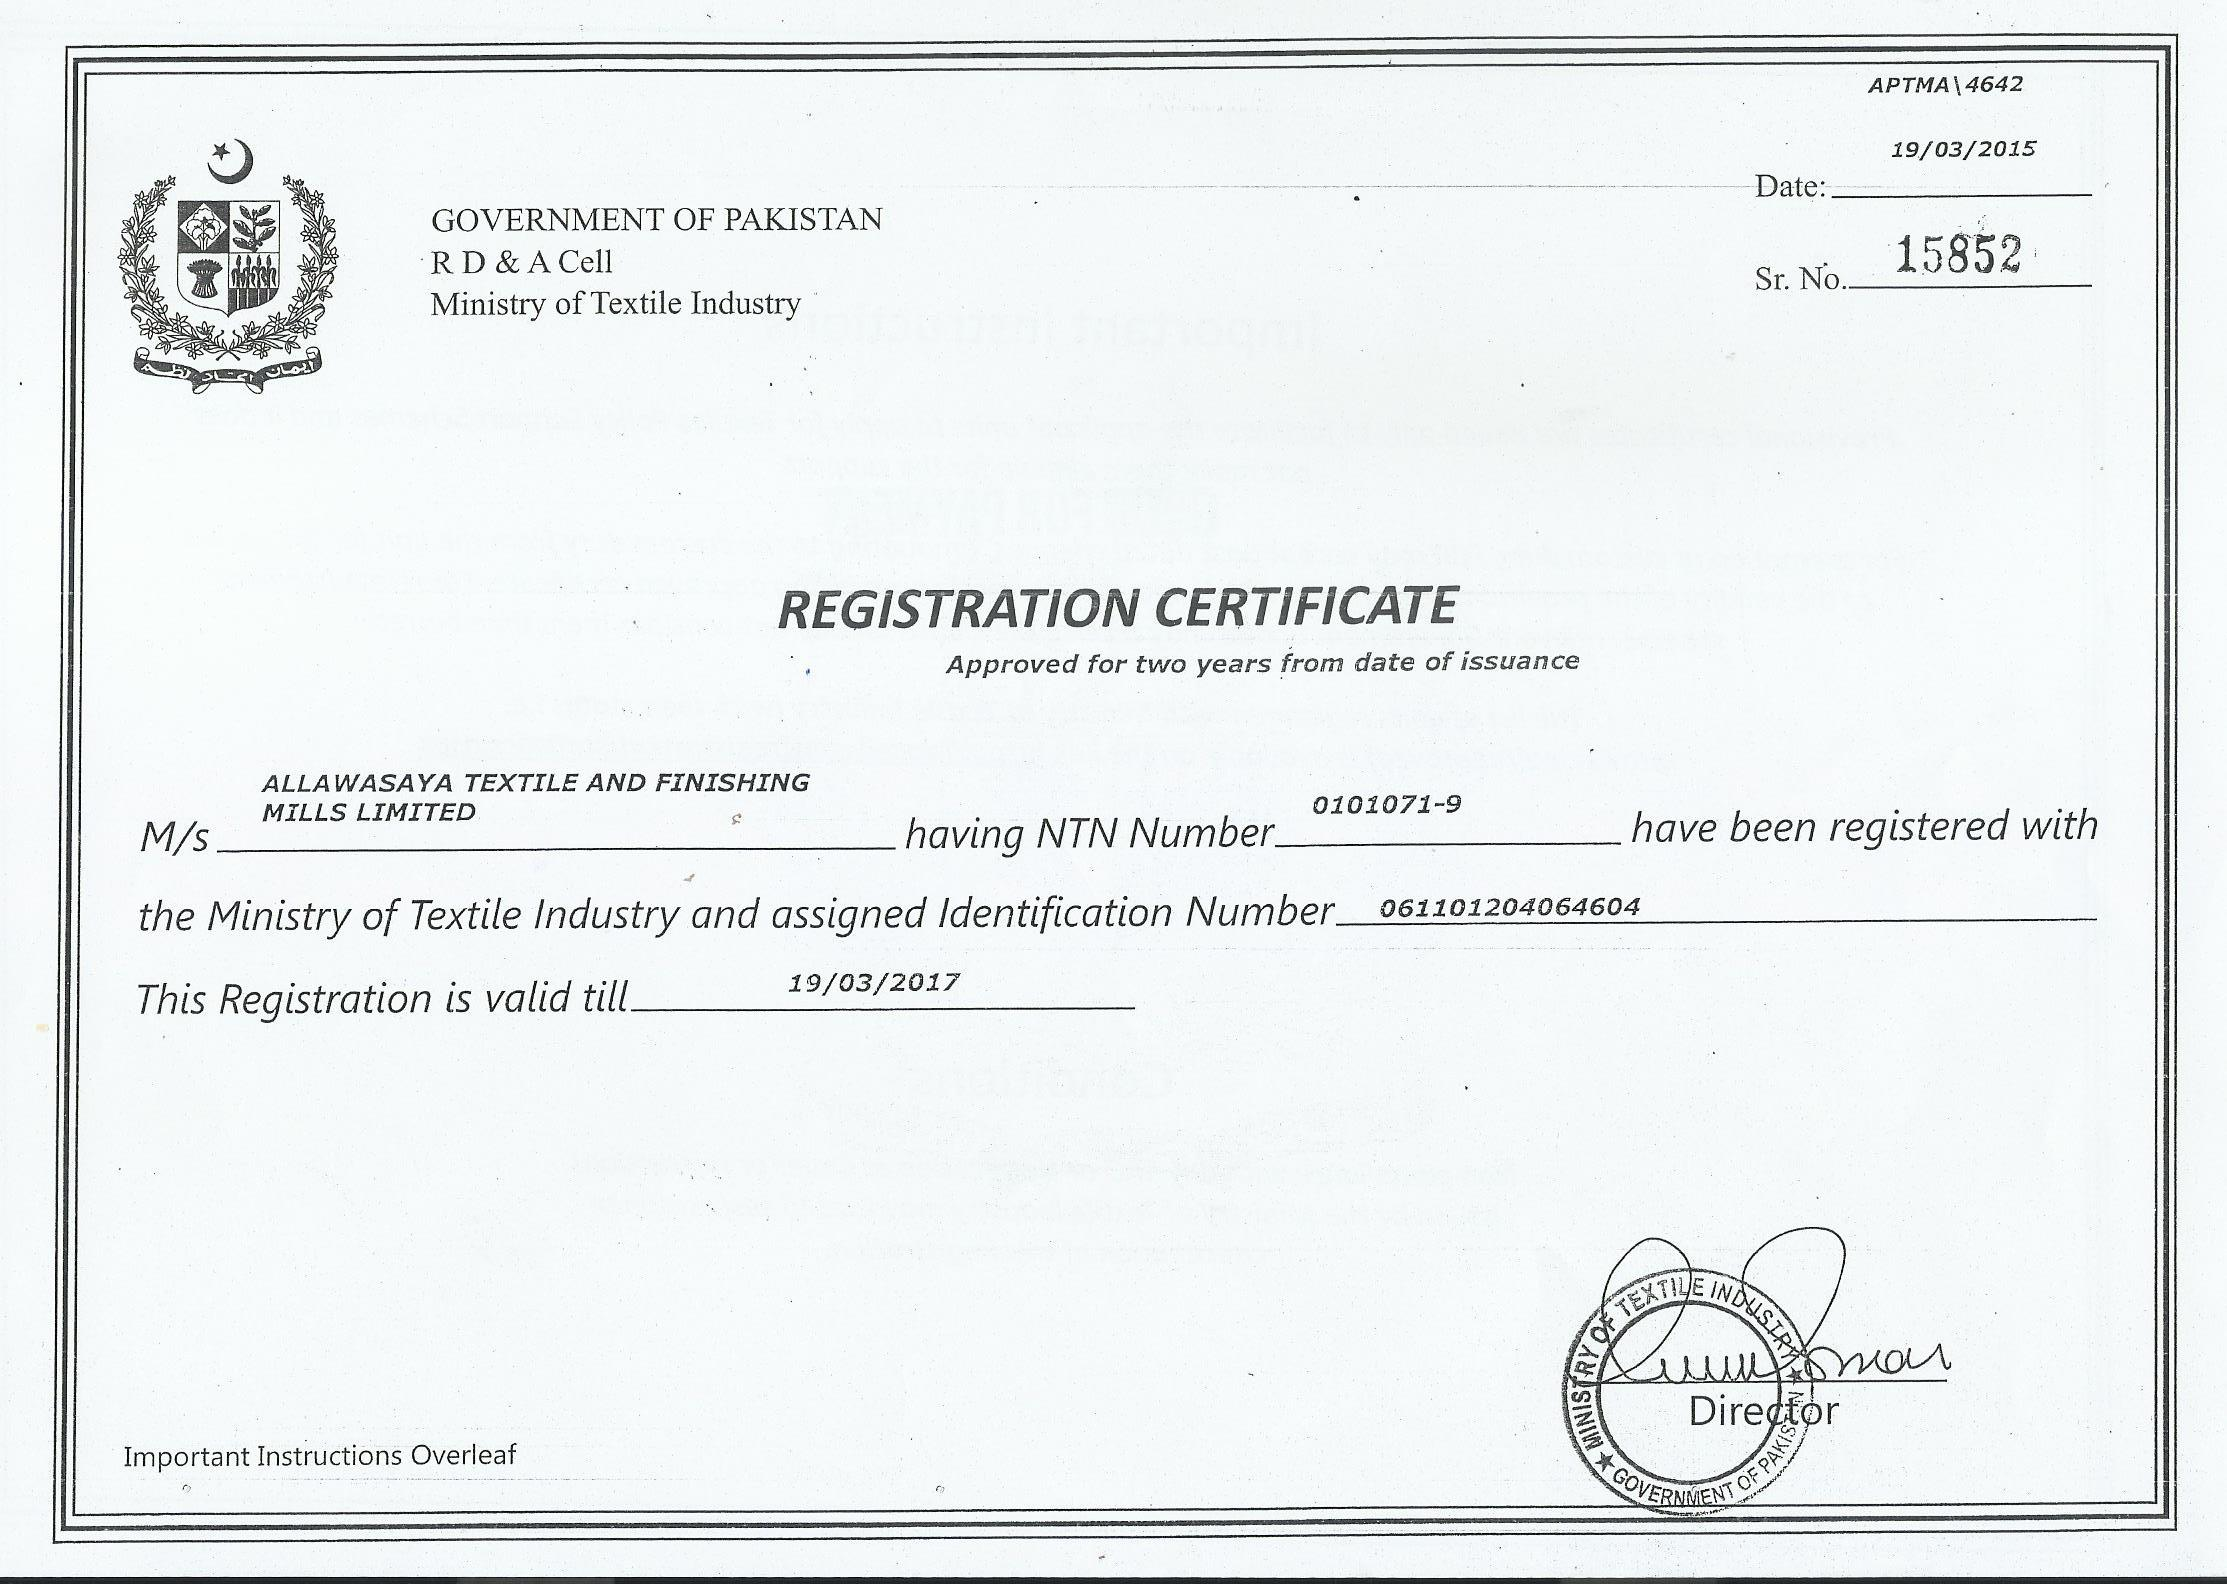 MINISTRY-TEXTILE-CERTIFICATE